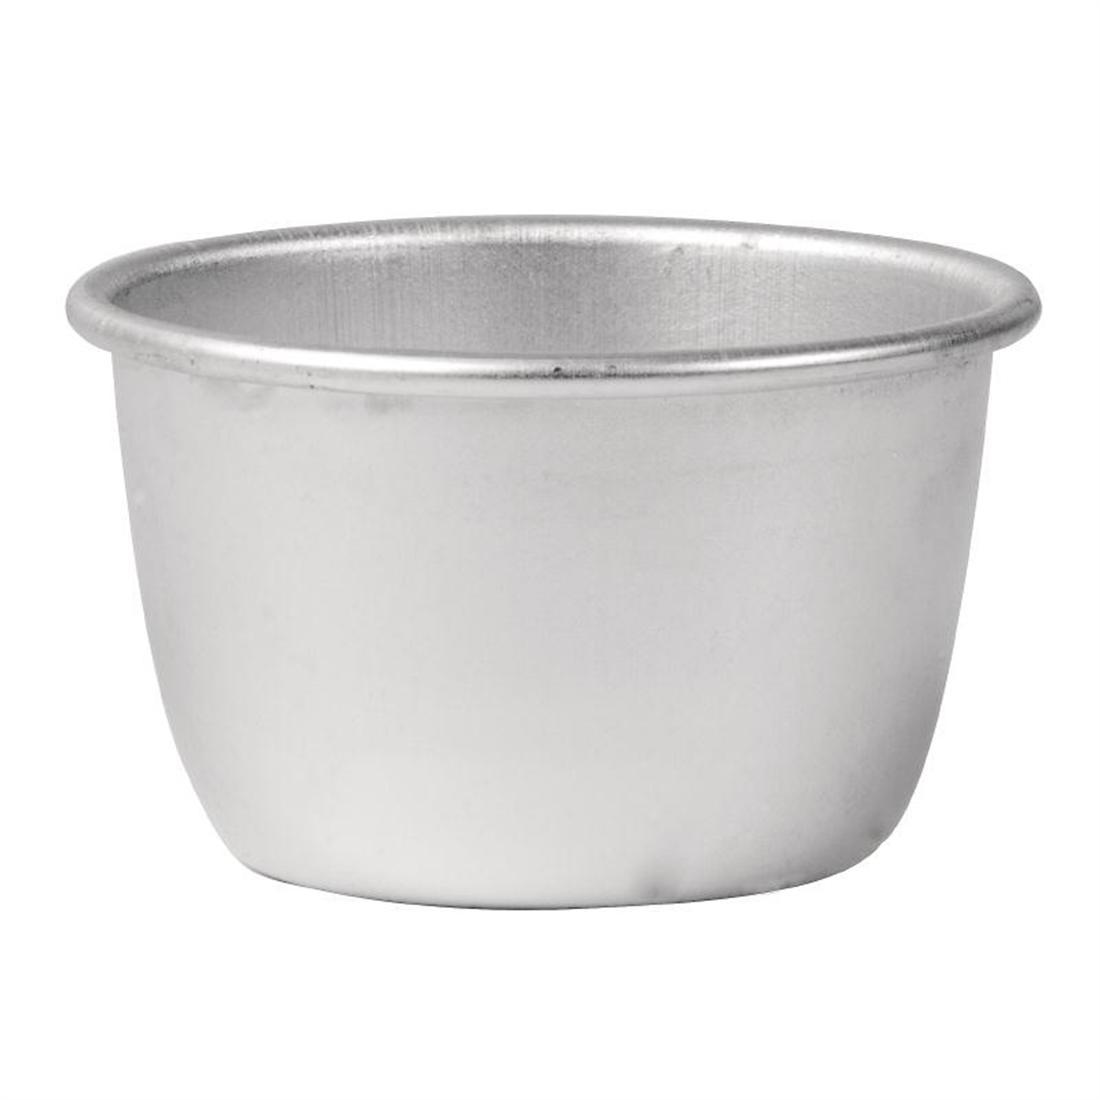 Vogue Aluminium Mini Pudding Basin 170ml - Each - E047